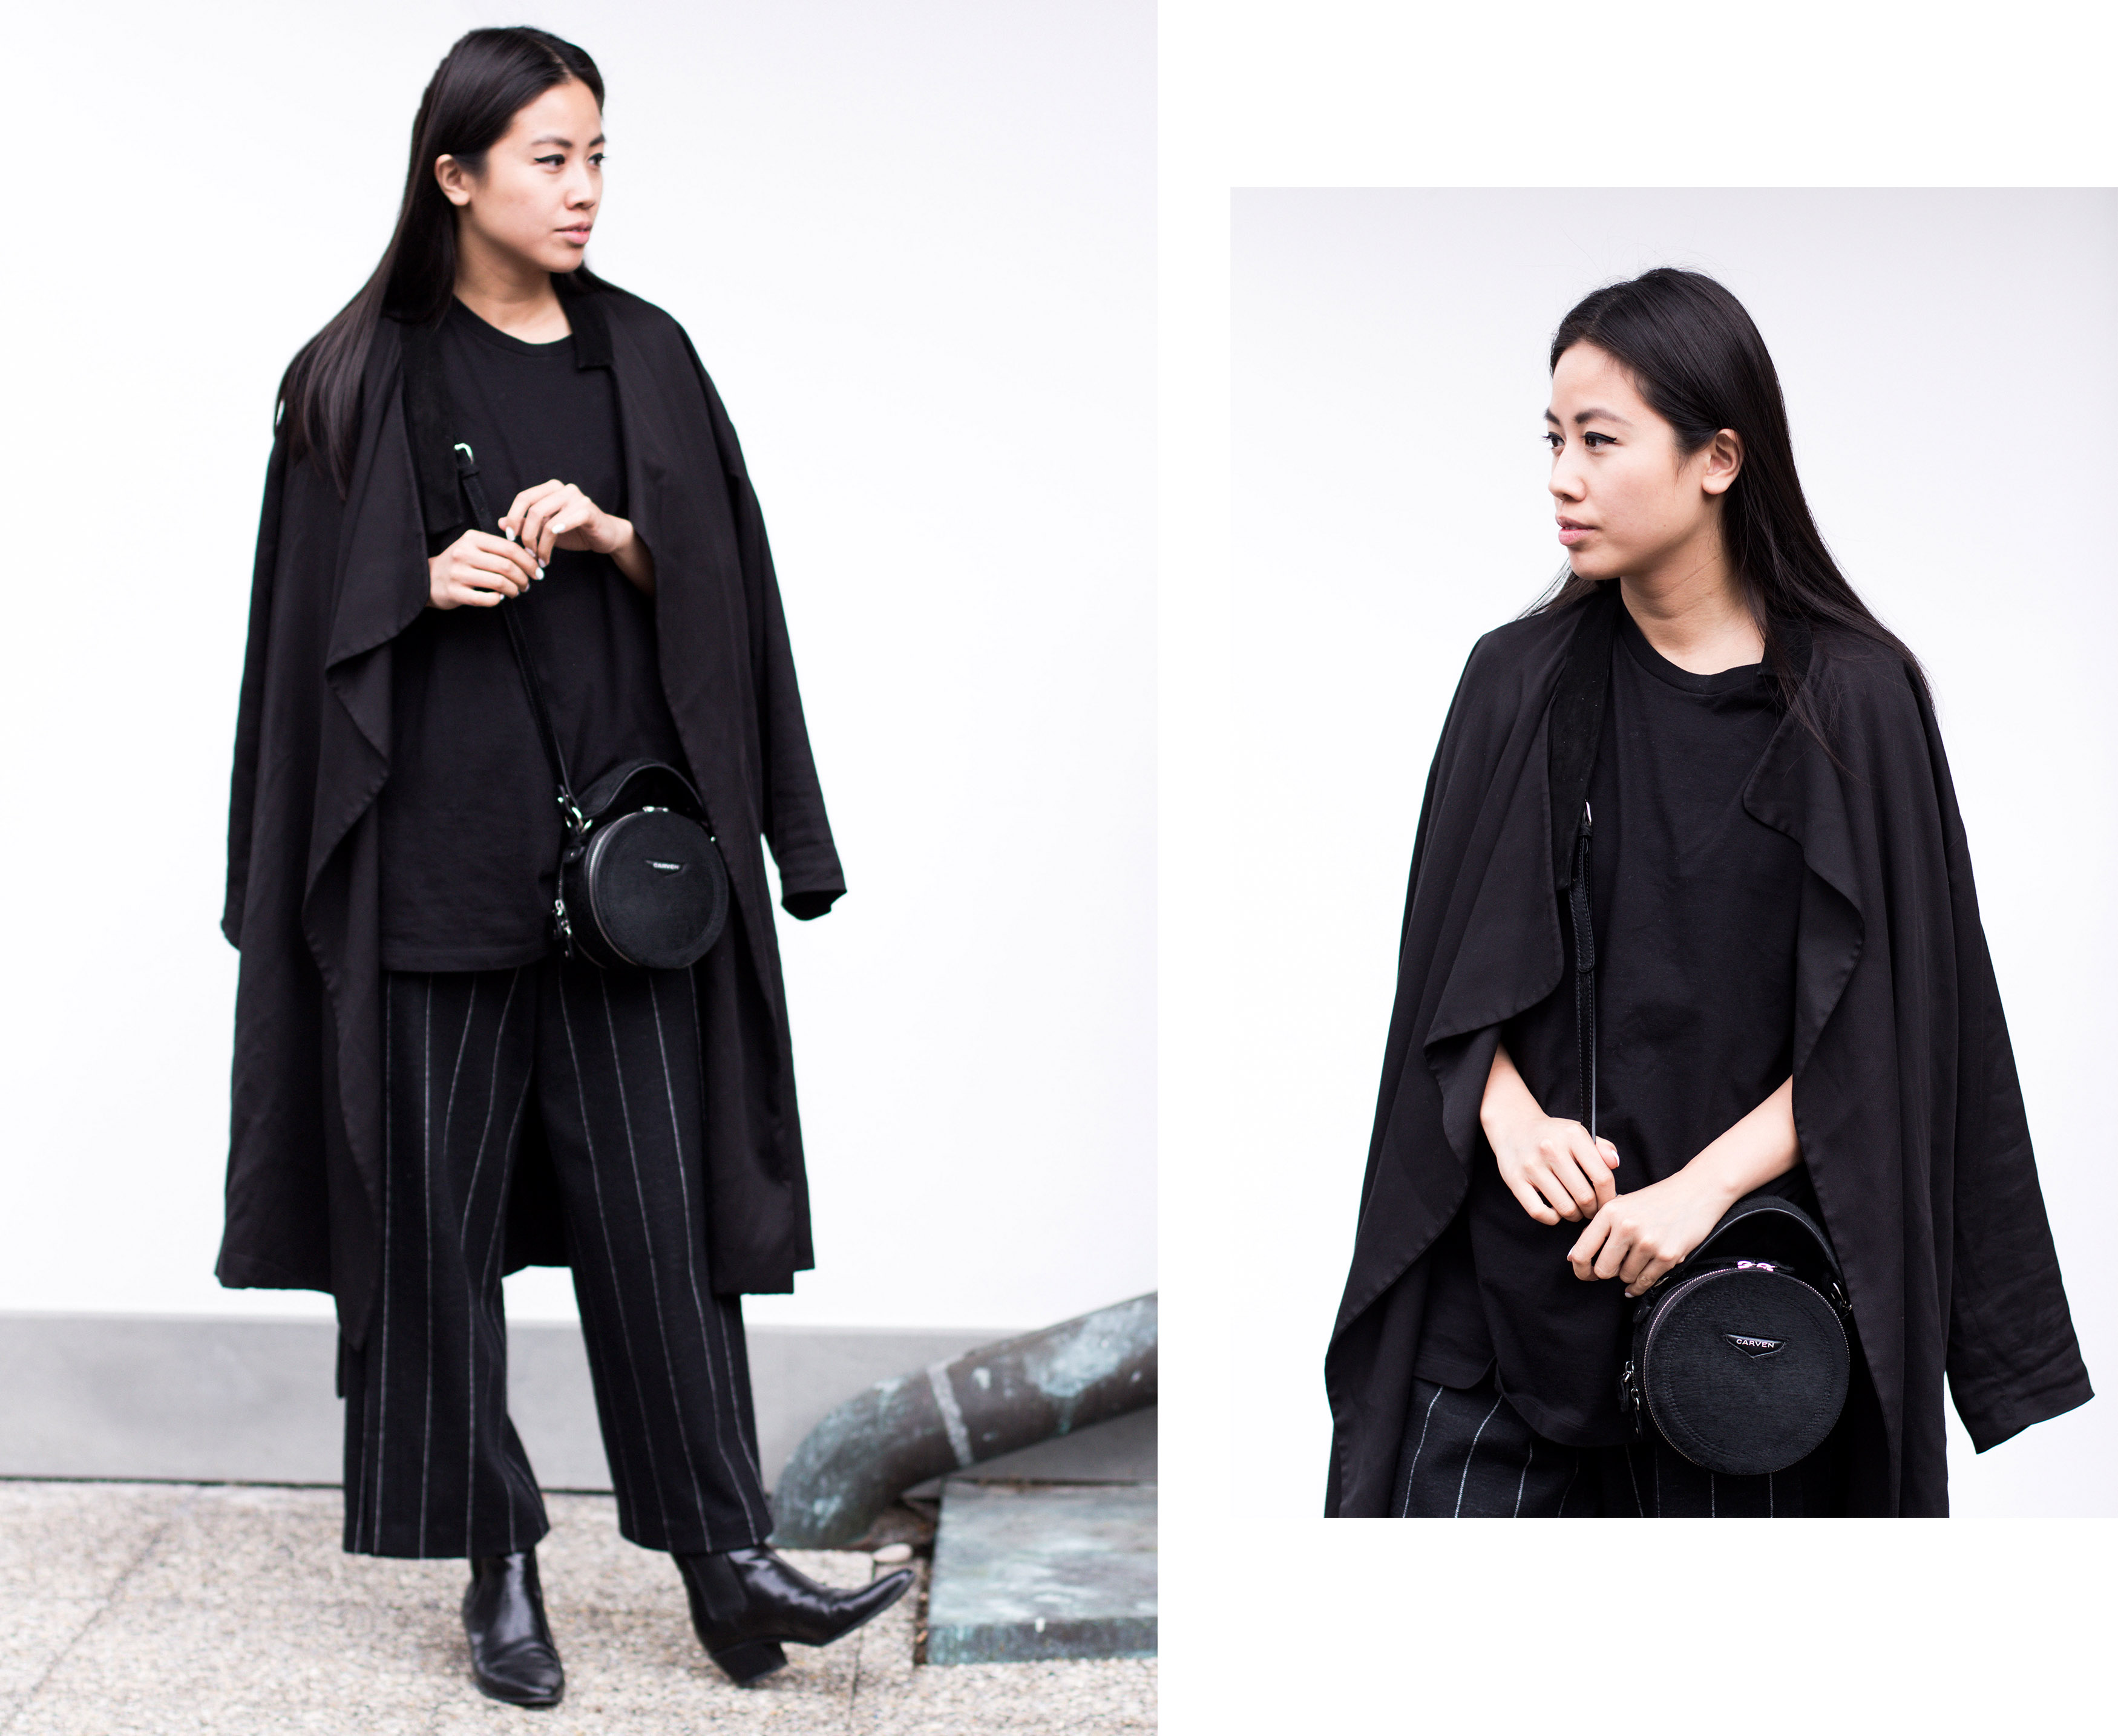 IHEARTALICE – Travel, Lifestyle & Travel-Blog from Berlin/Germany by Alice M. Huynh: OOTD by Alice wearing All Saints Black Trenchcoat, Maison Martin Margiela Men T-Shirt, Odeeh Wool Pinstripe Pants, Saint Laurent Lizard Stamp Boots, Carven Black Leather Circular Bag